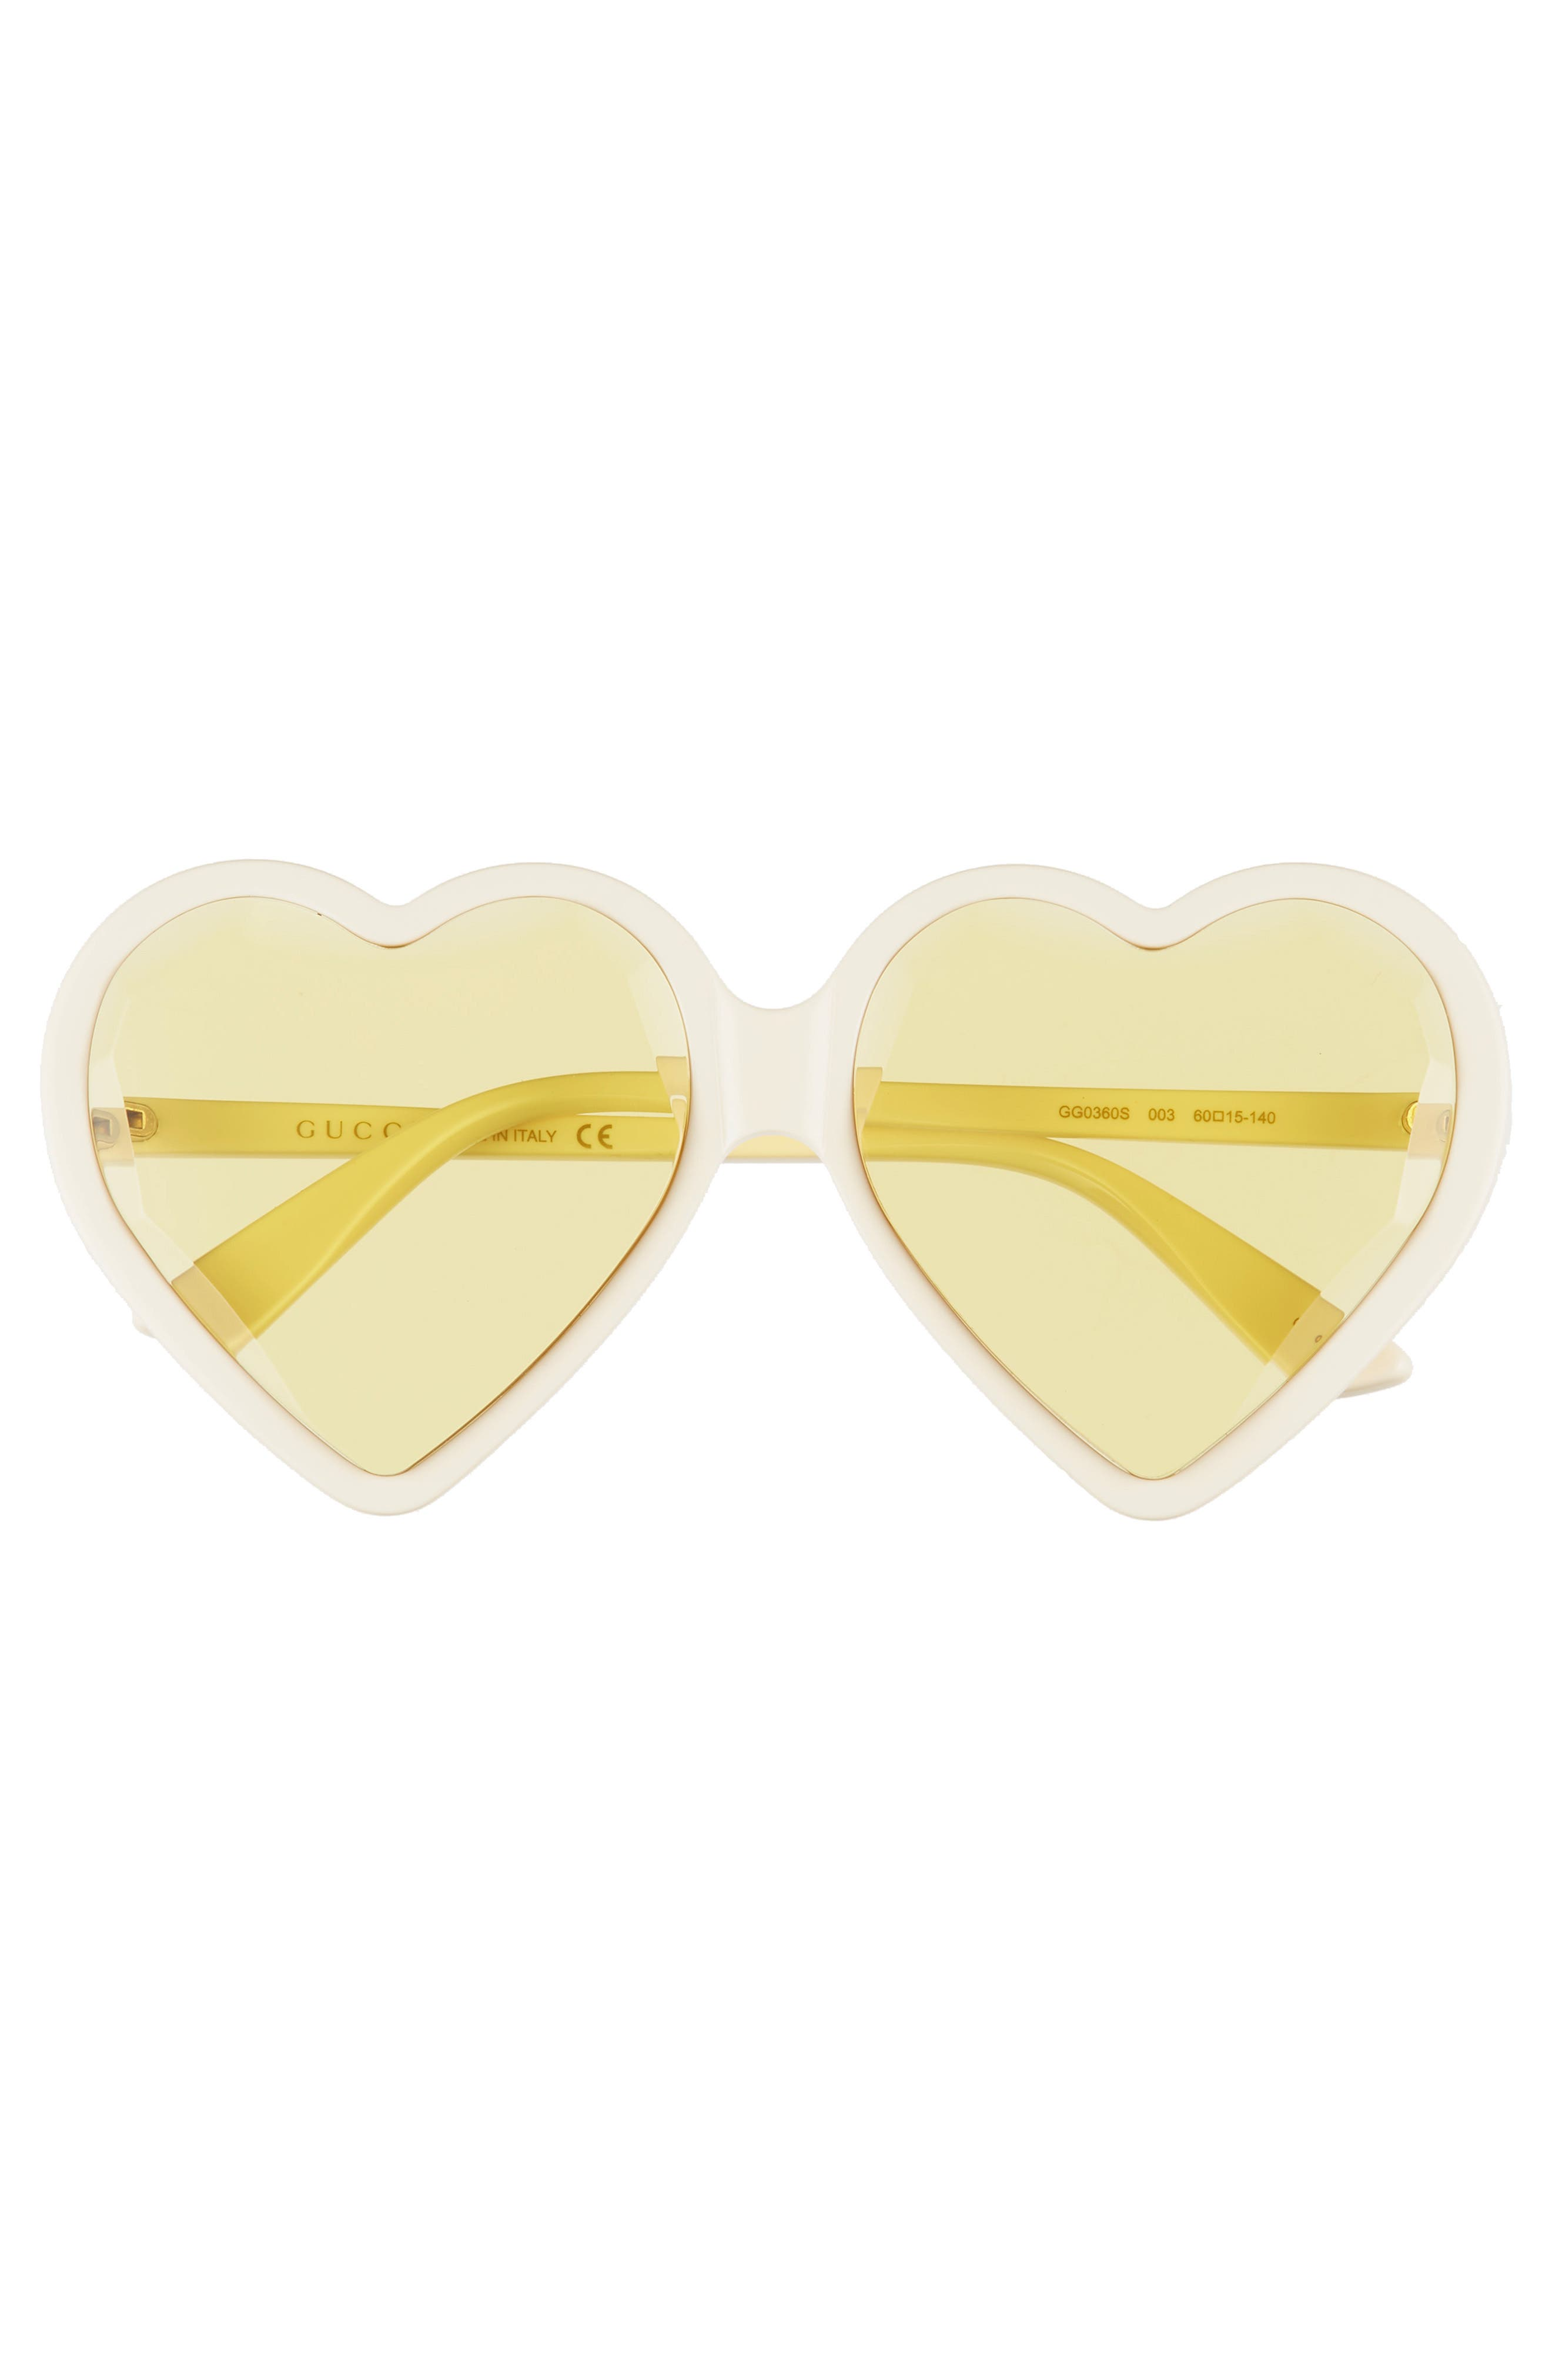 GUCCI,                             60mm Heart Sunglasses,                             Alternate thumbnail 3, color,                             IVORY/ YELLOW